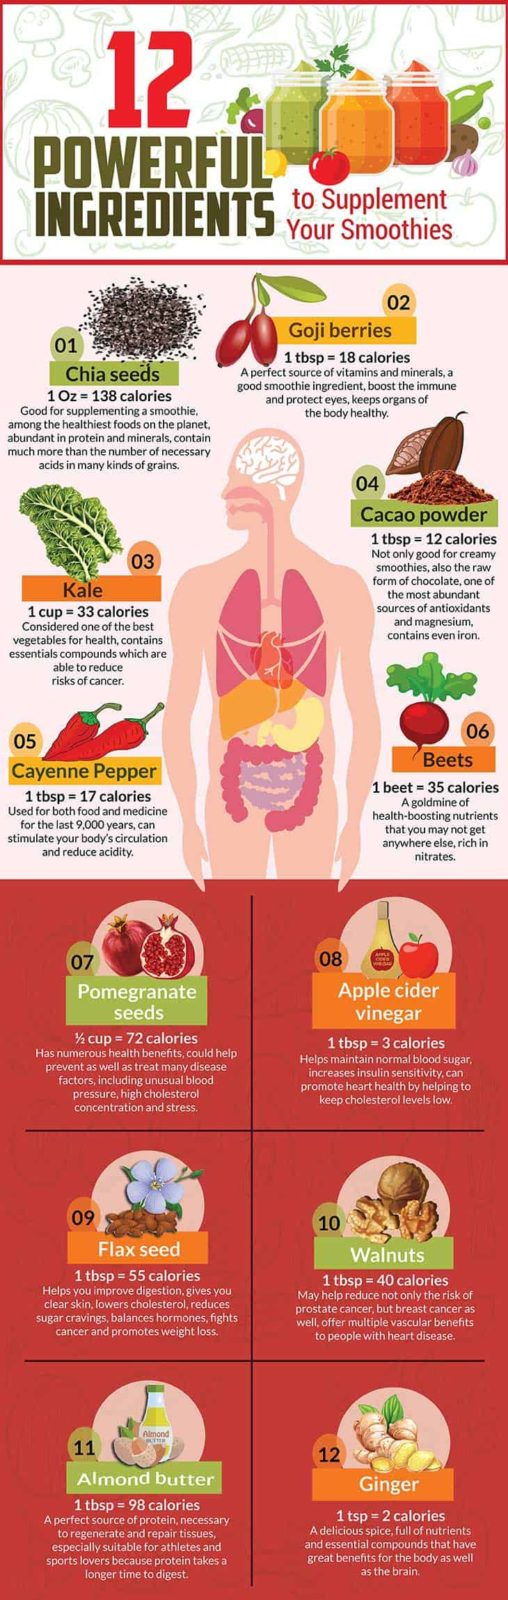 12-powerful-ingredients-to-supplement-your-smoothies